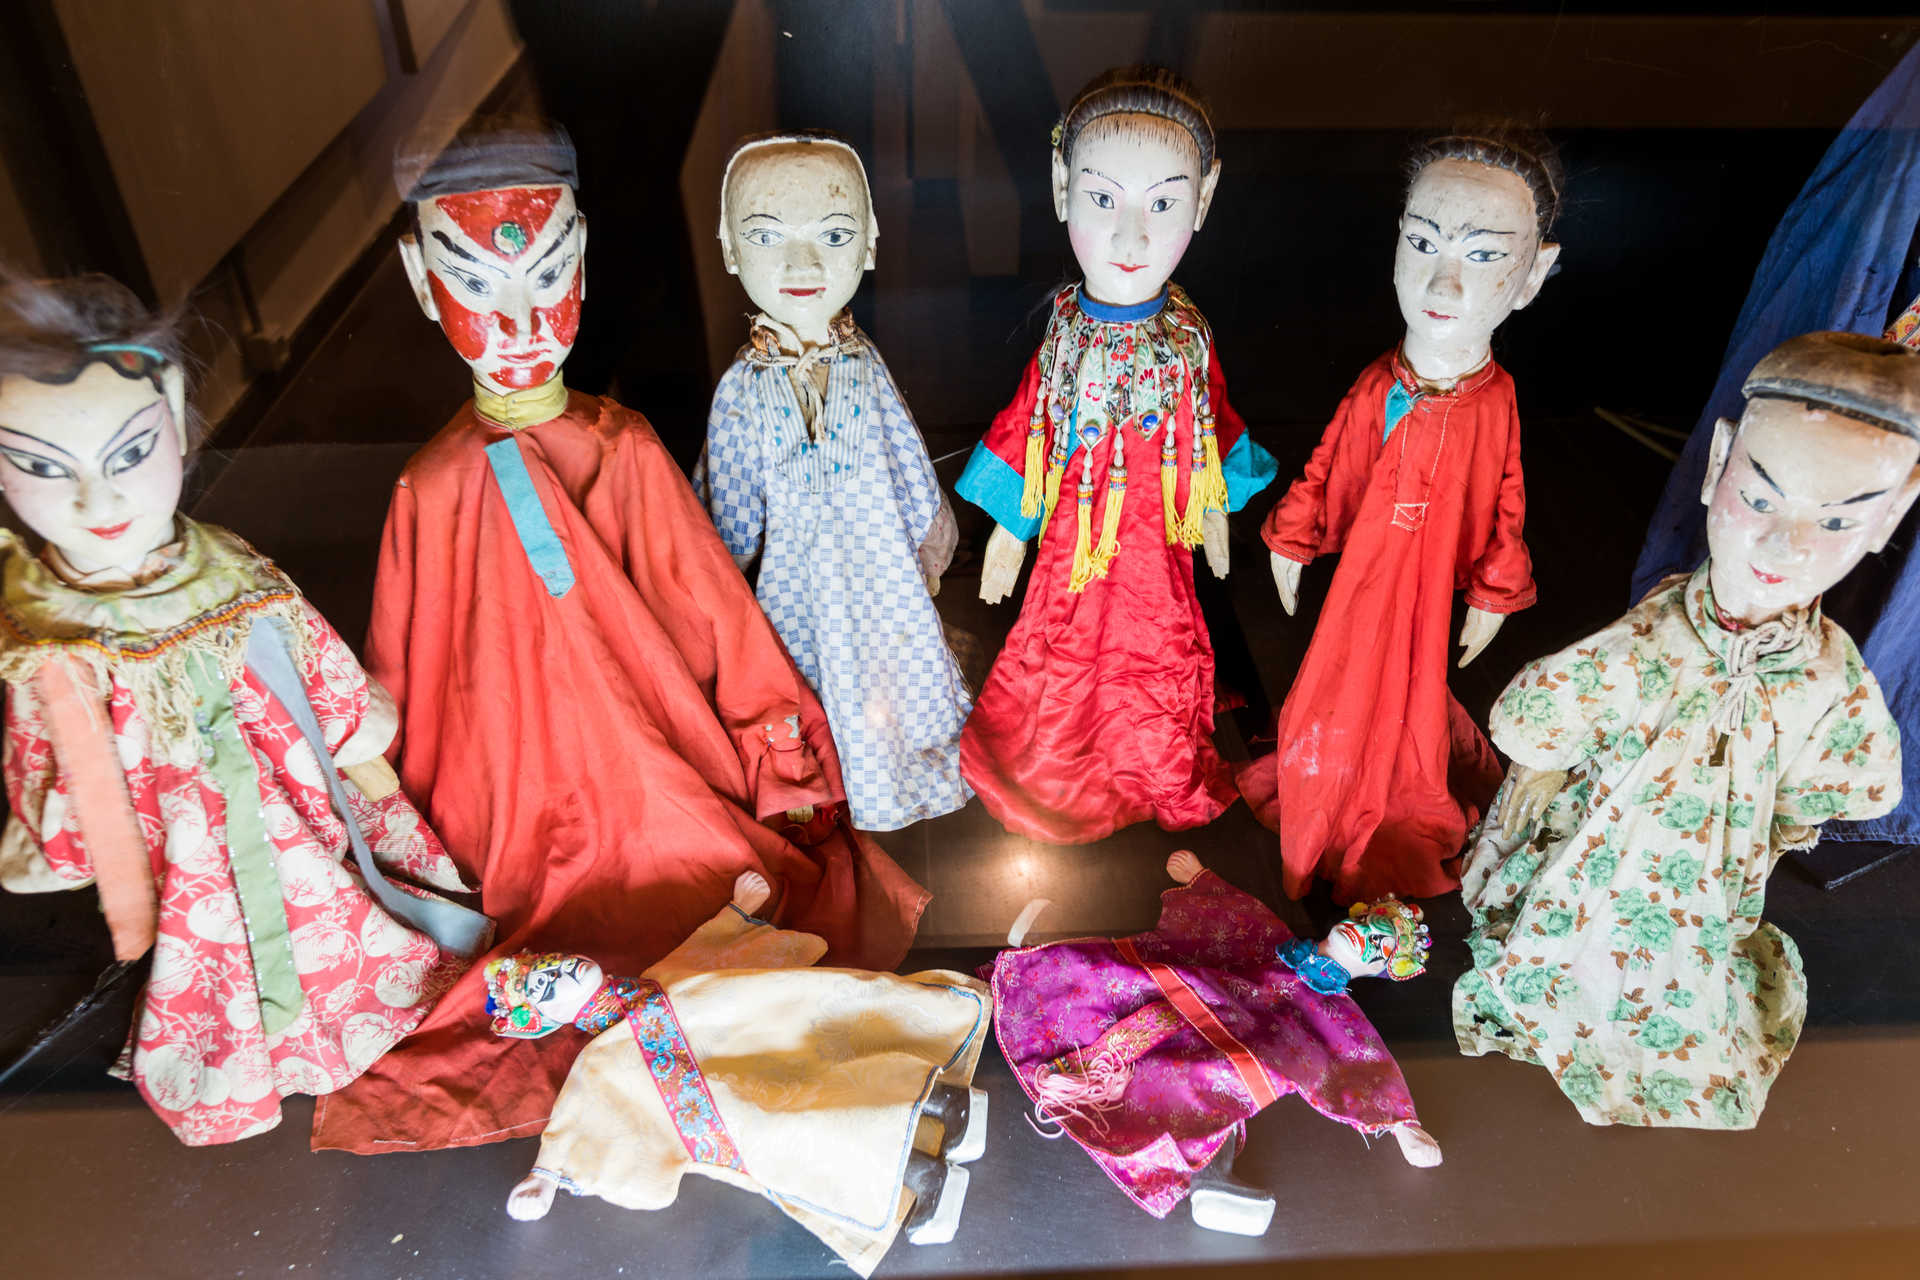 International Puppet Museum of Albaida